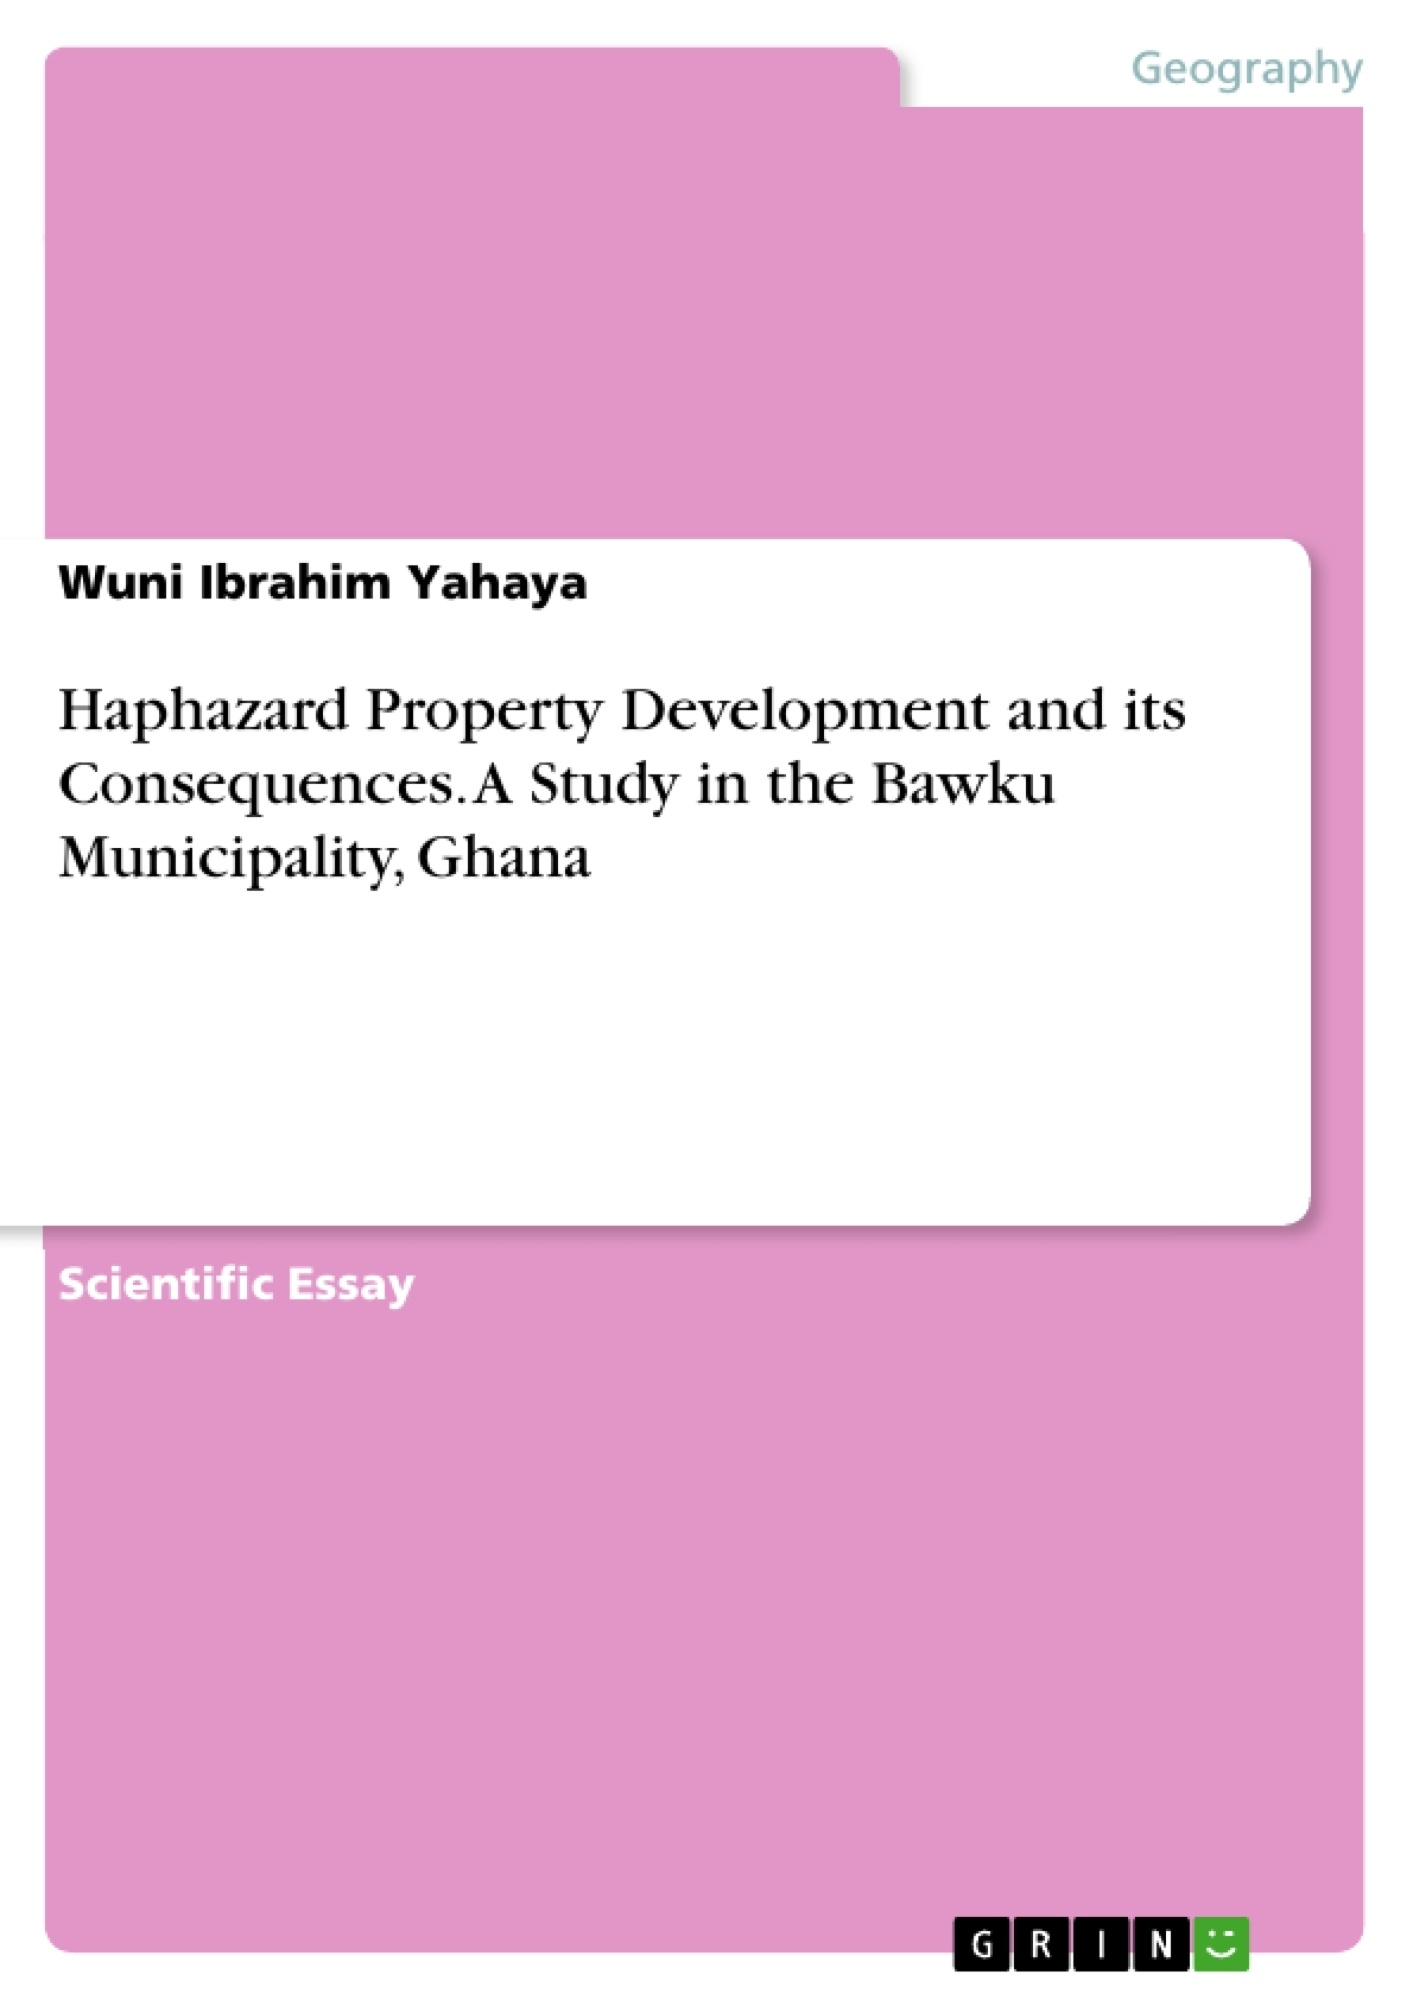 Title: Haphazard Property Development and its Consequences. A Study in the Bawku Municipality, Ghana